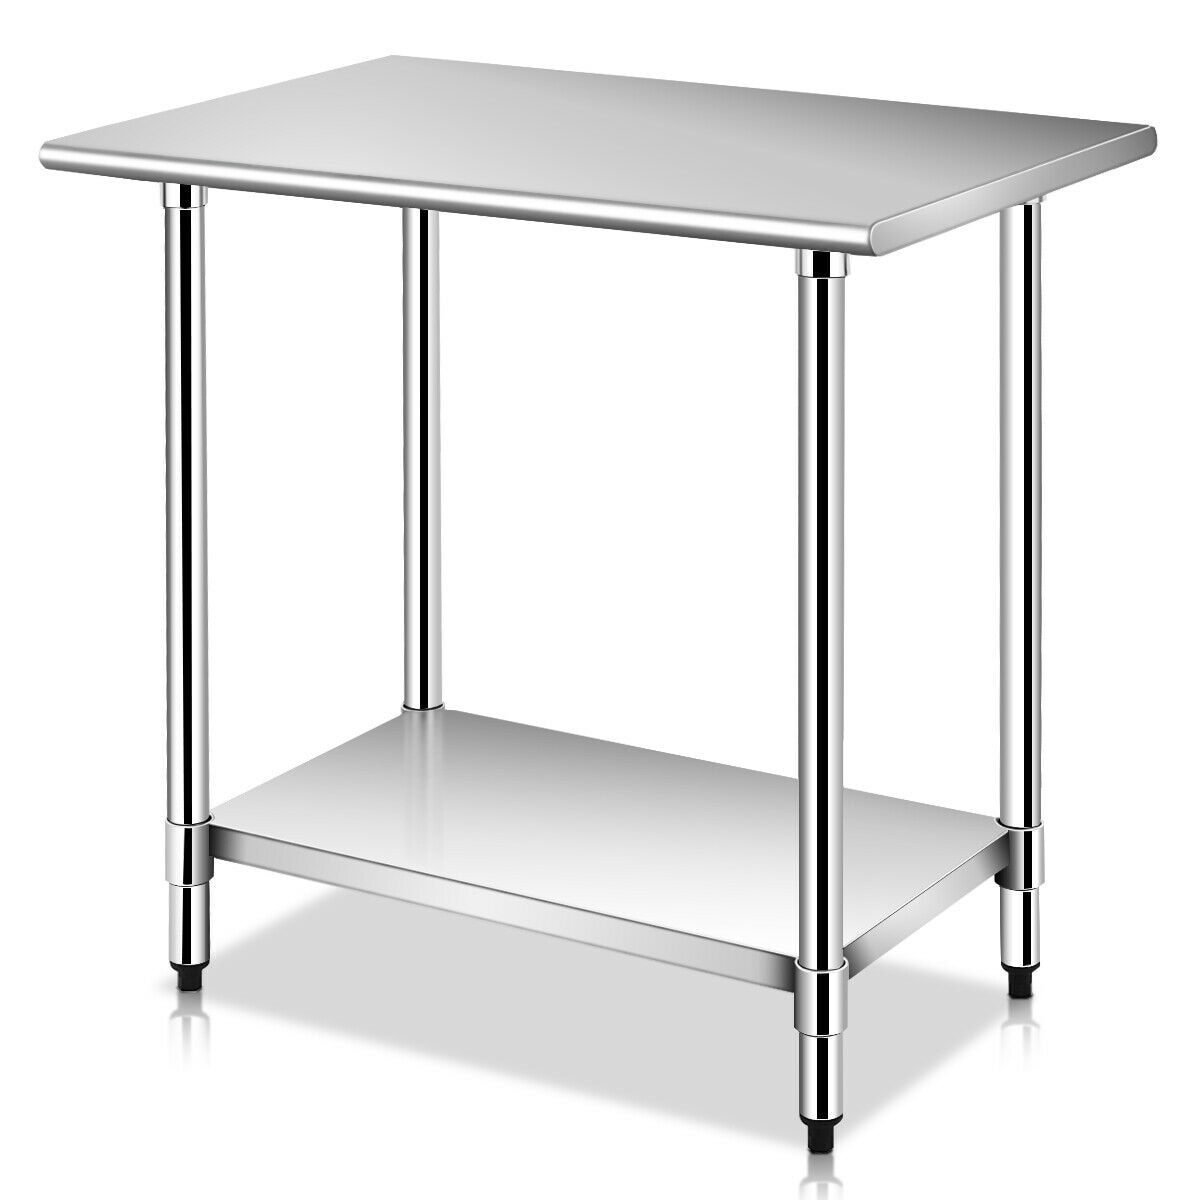 Stainless Restaurant Table Costway 24 X 36 Stainless Steel Work Prep Table Commercial Kitchen Restaurant Sliver